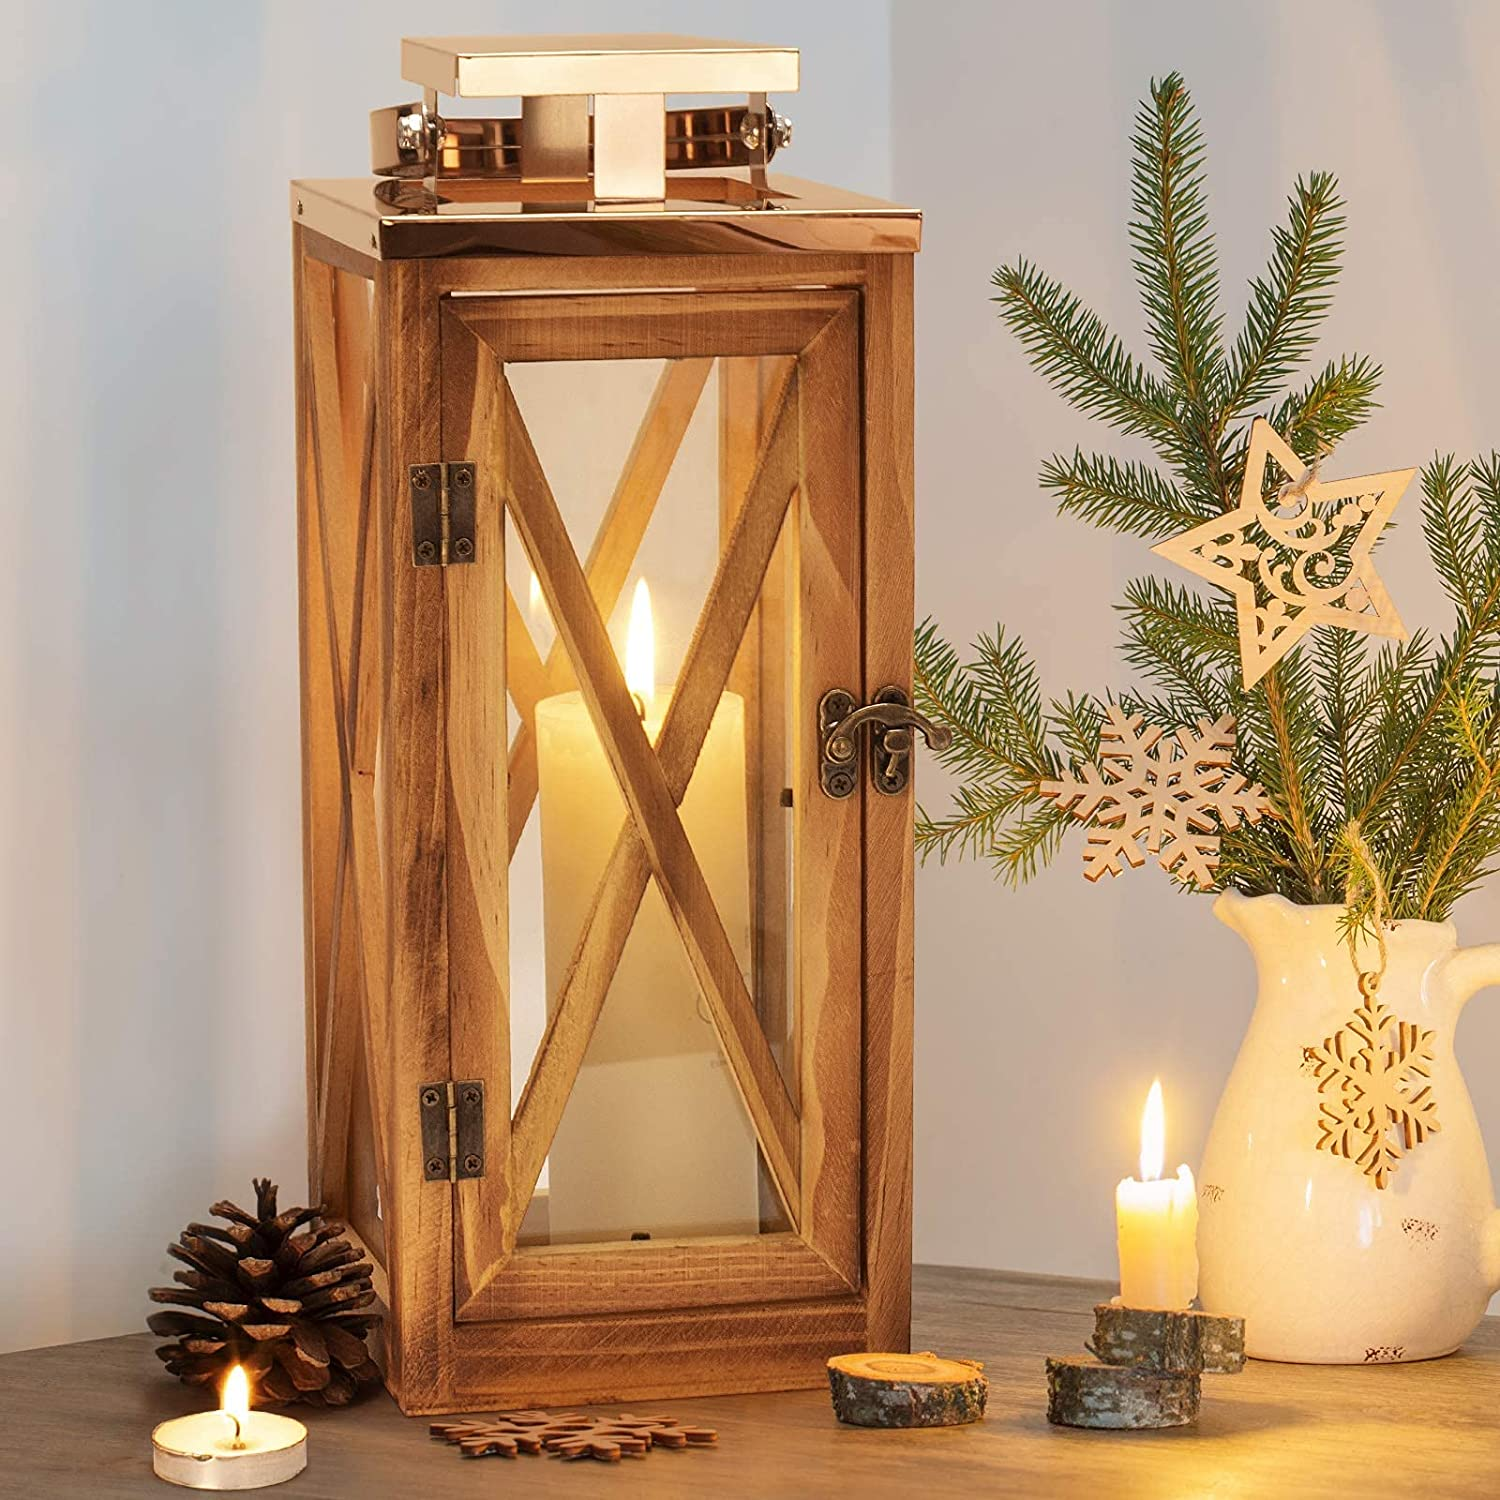 XRKITE Wooden Candle Lantern Decorative, Patio Decor with Stainless and Glass, Hurricane Lantern Holder Decor for Indoor Outdoor, Home, Garden, Wedding, Parties, Relaxing Spa Setting Hanging Lantern